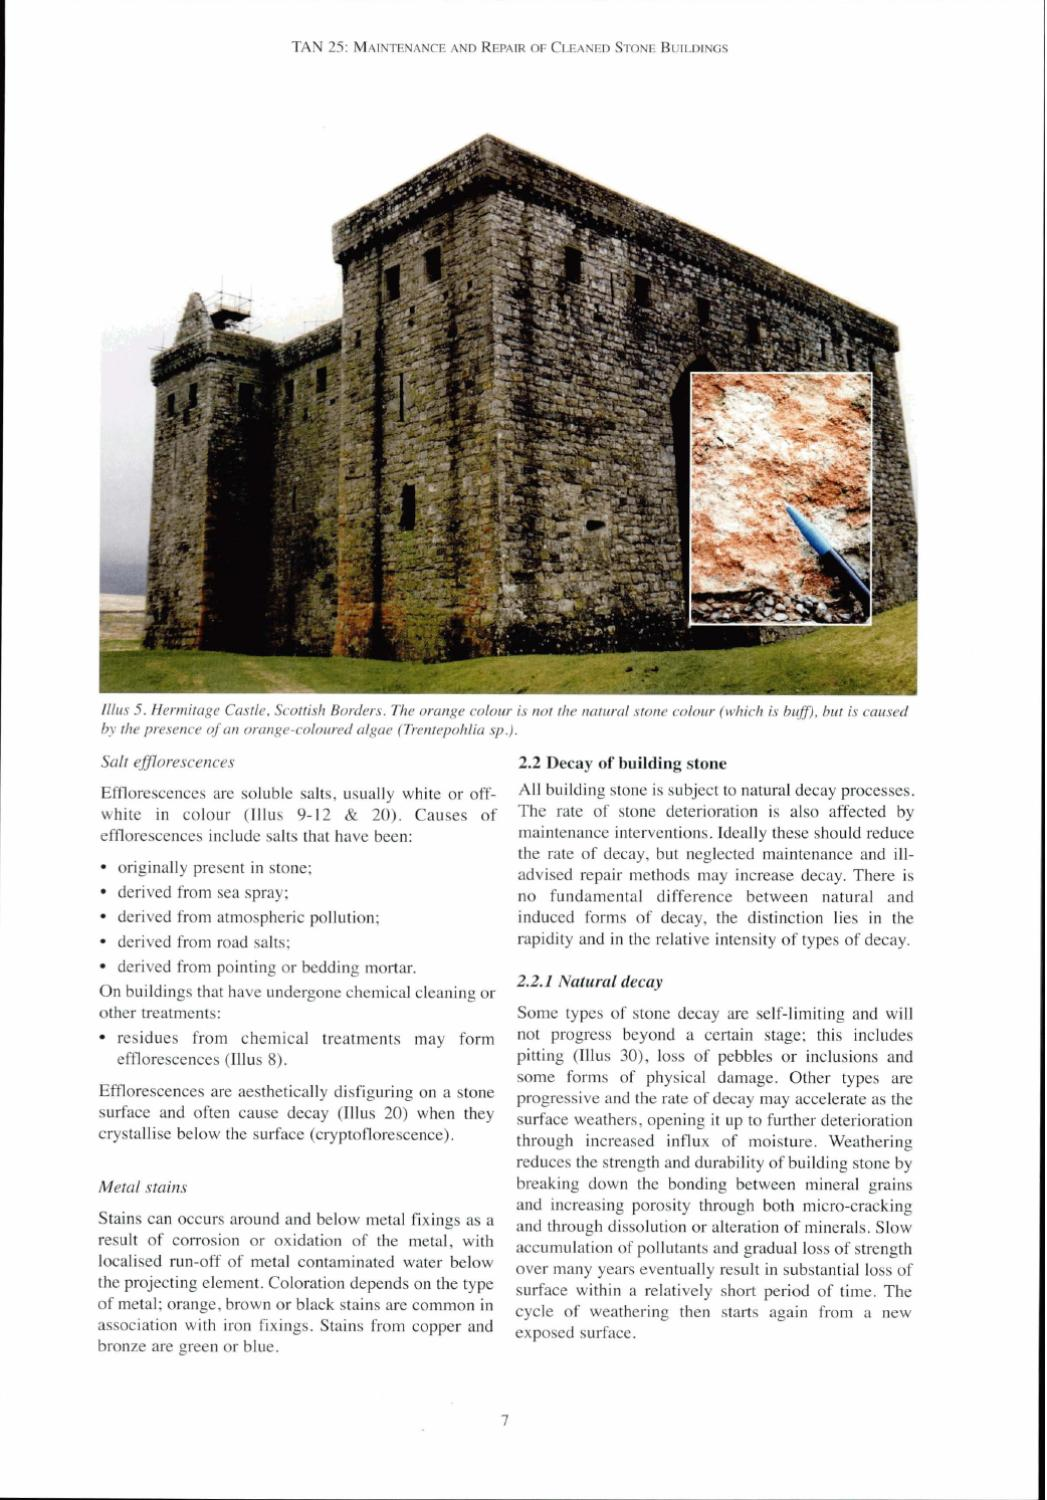 TAN 25 - Maintenance and Repair of Cleaned Stoned Buildings by